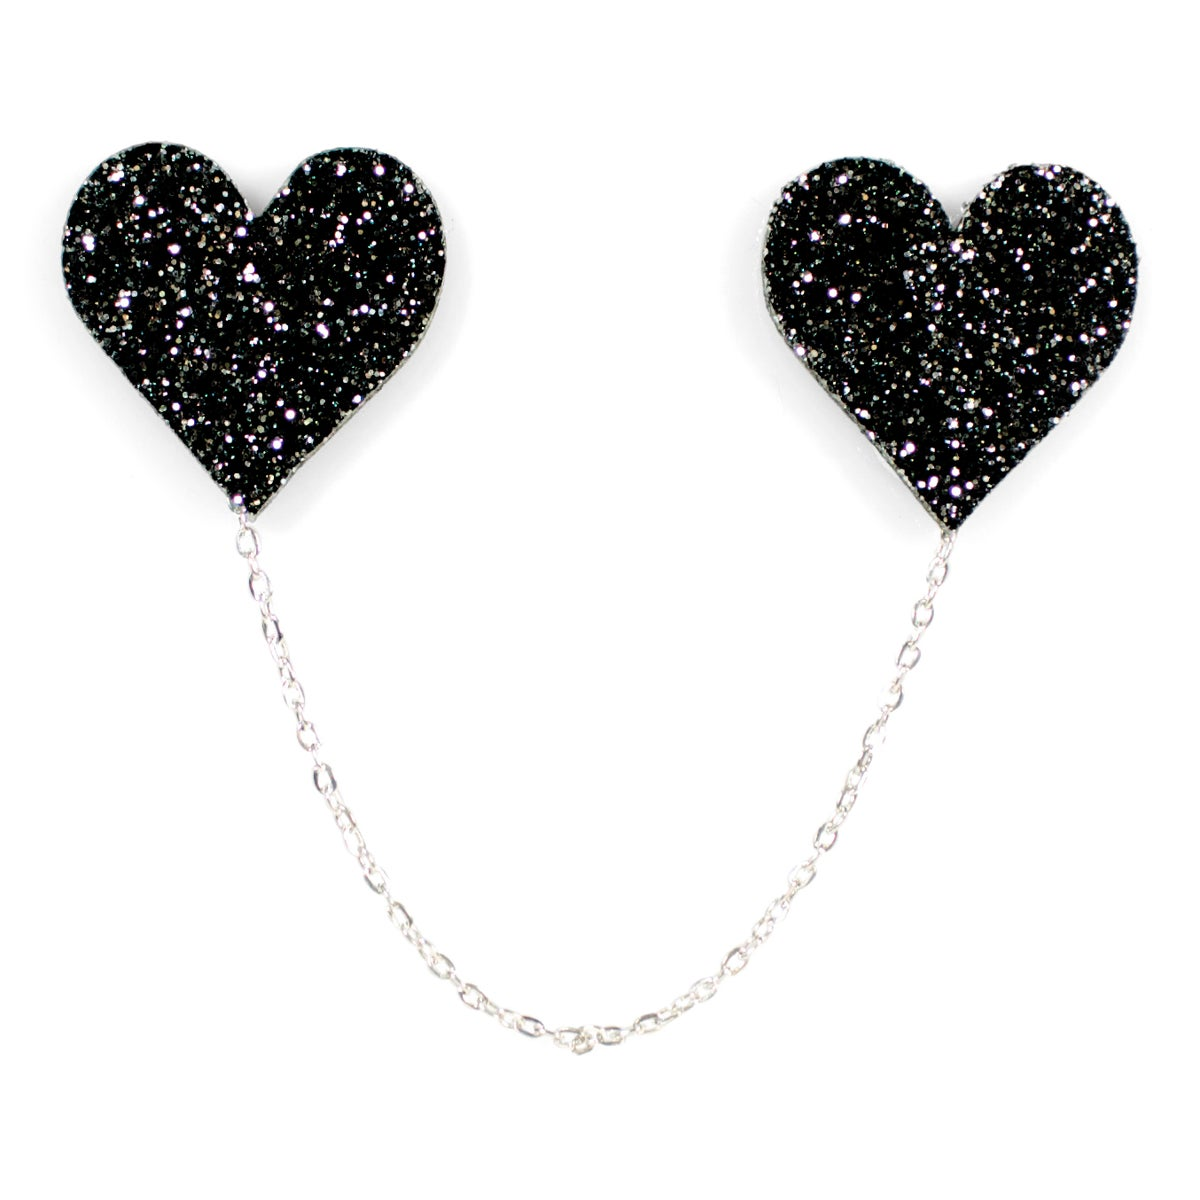 Image of Heart Collar Pins